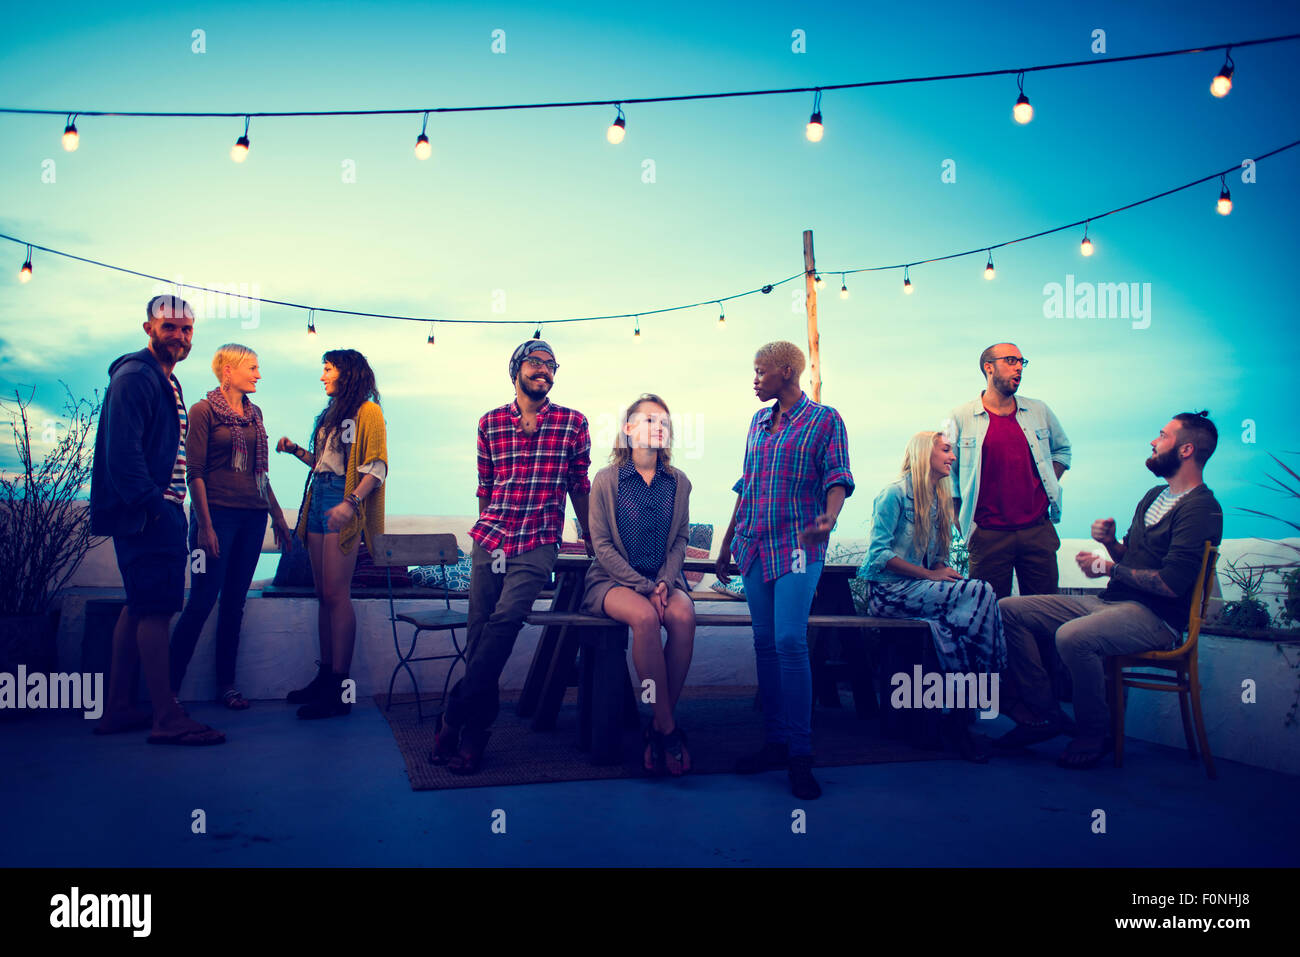 Diversity Sundown Beach Chatting Roof Top Fun Concept - Stock Image